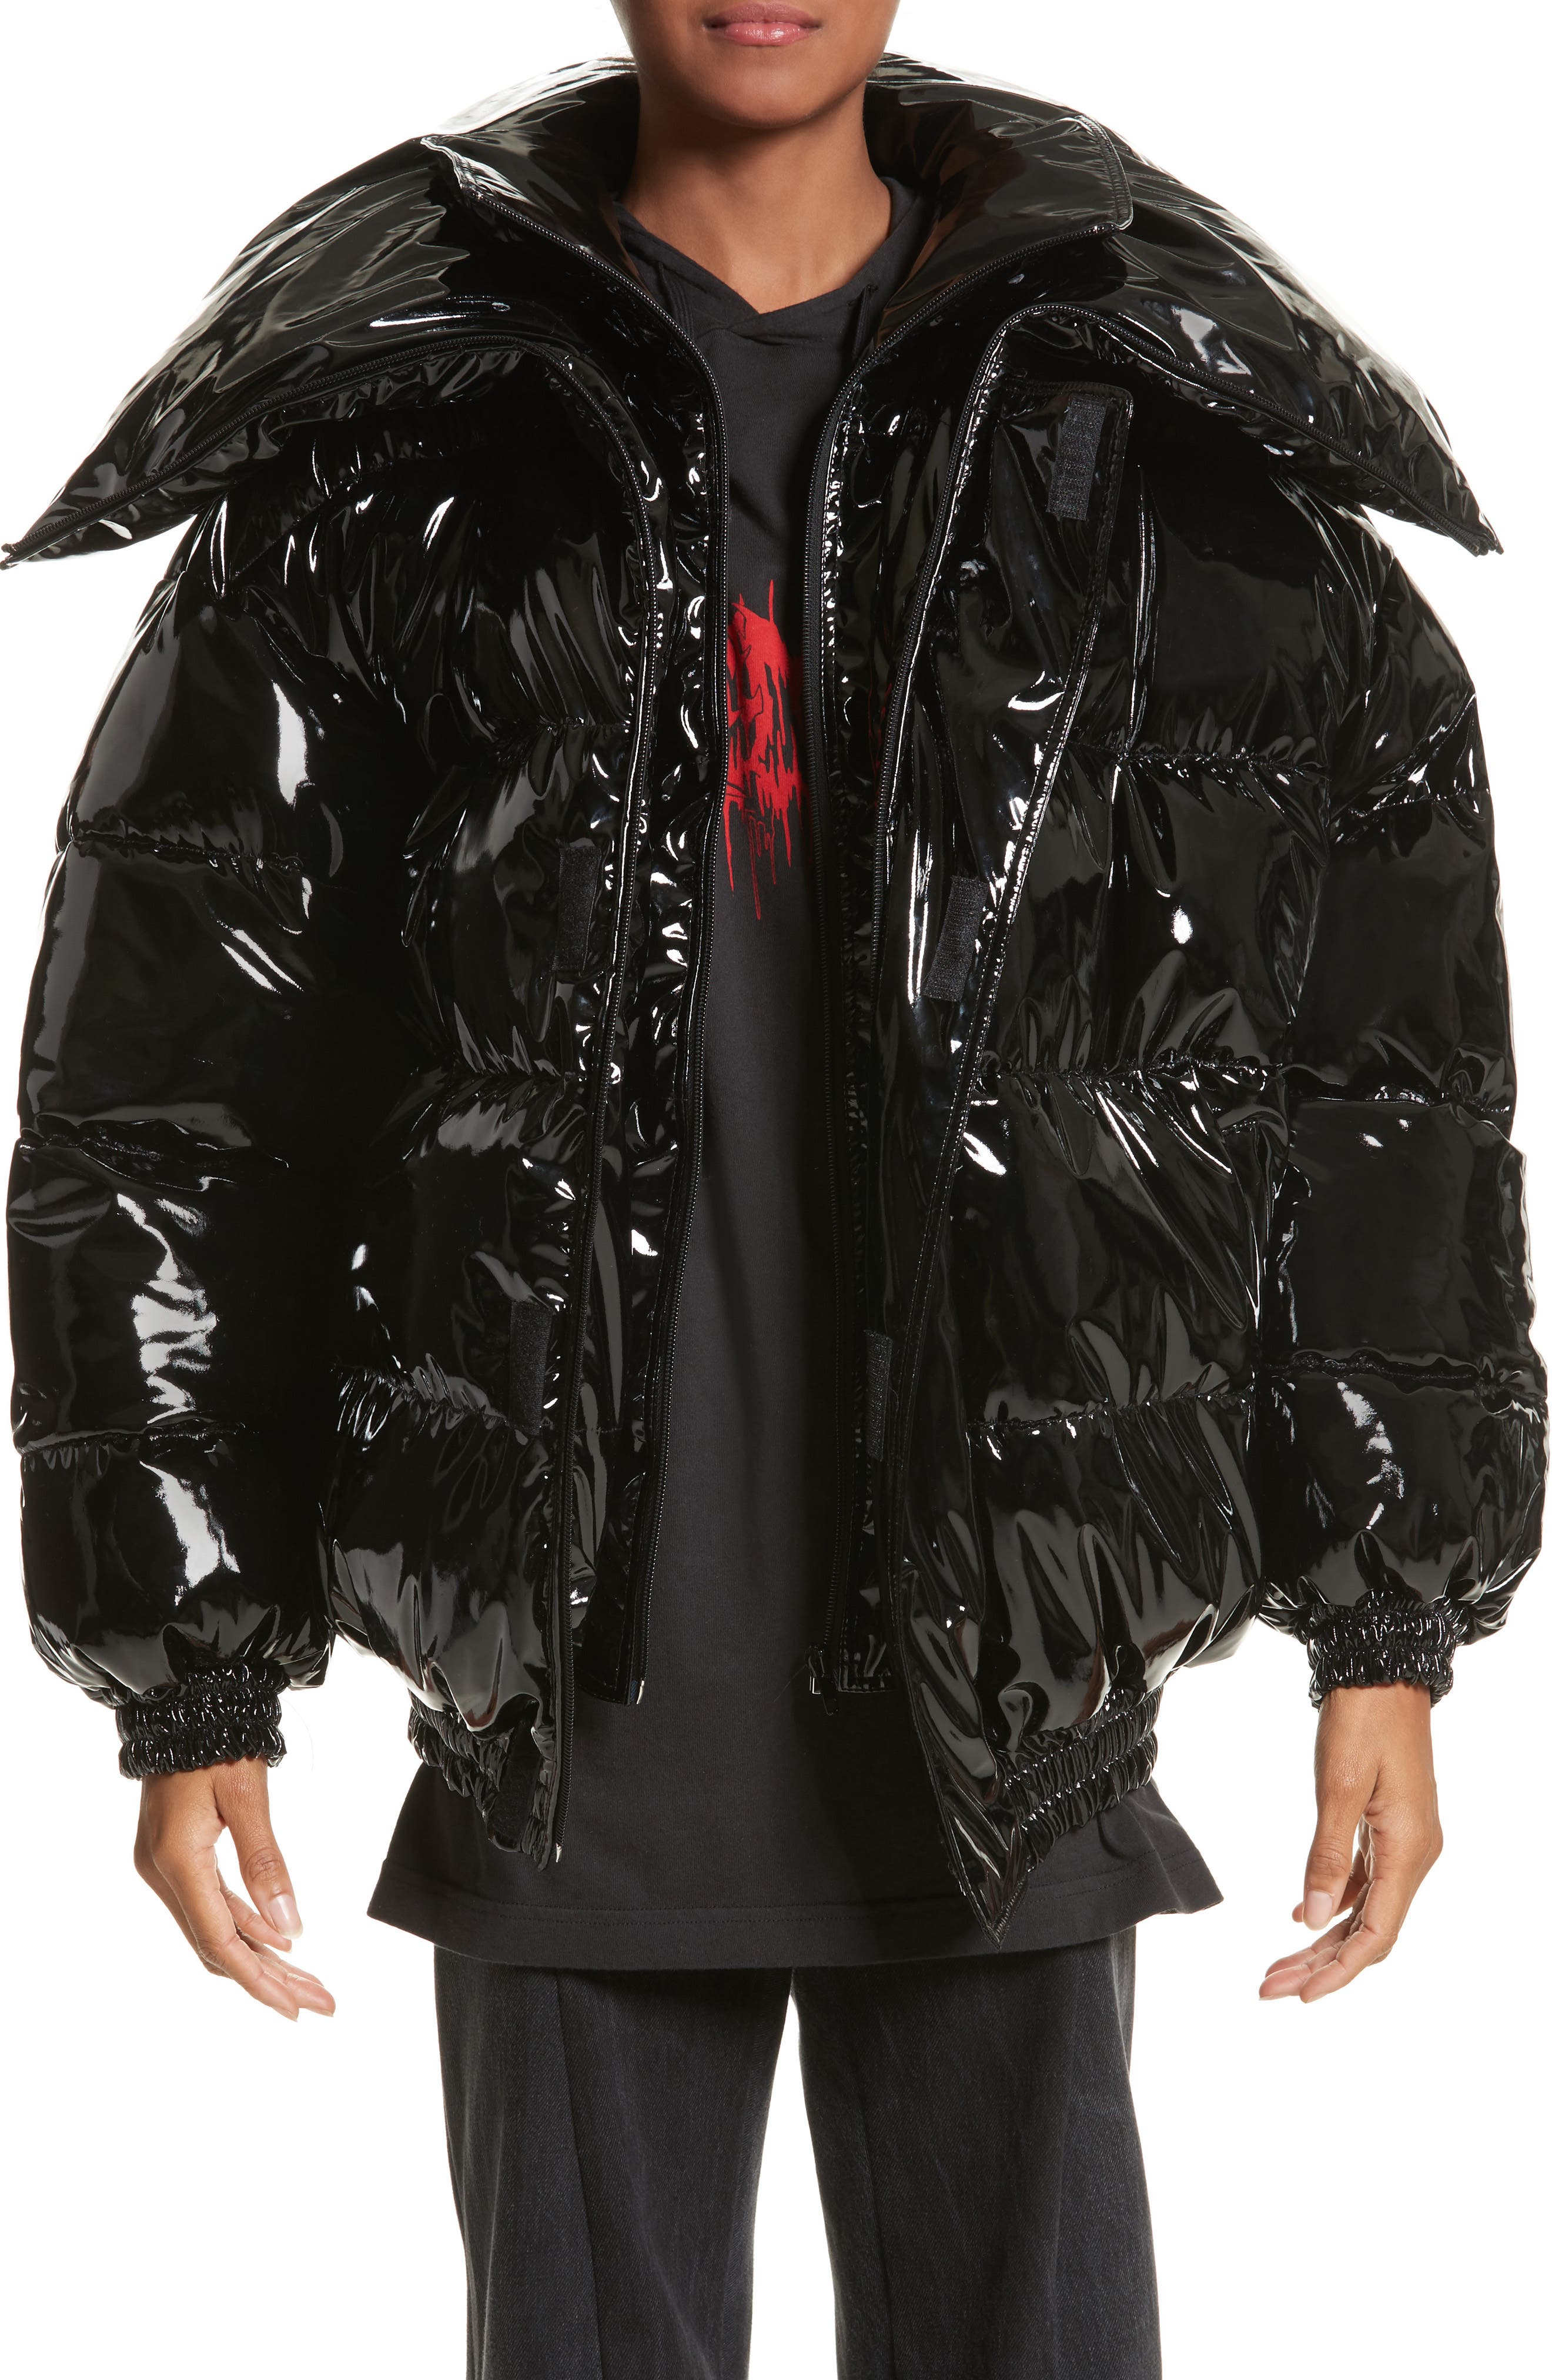 Miss Webcam Puffer Jacket,                             Main thumbnail 1, color,                             Black